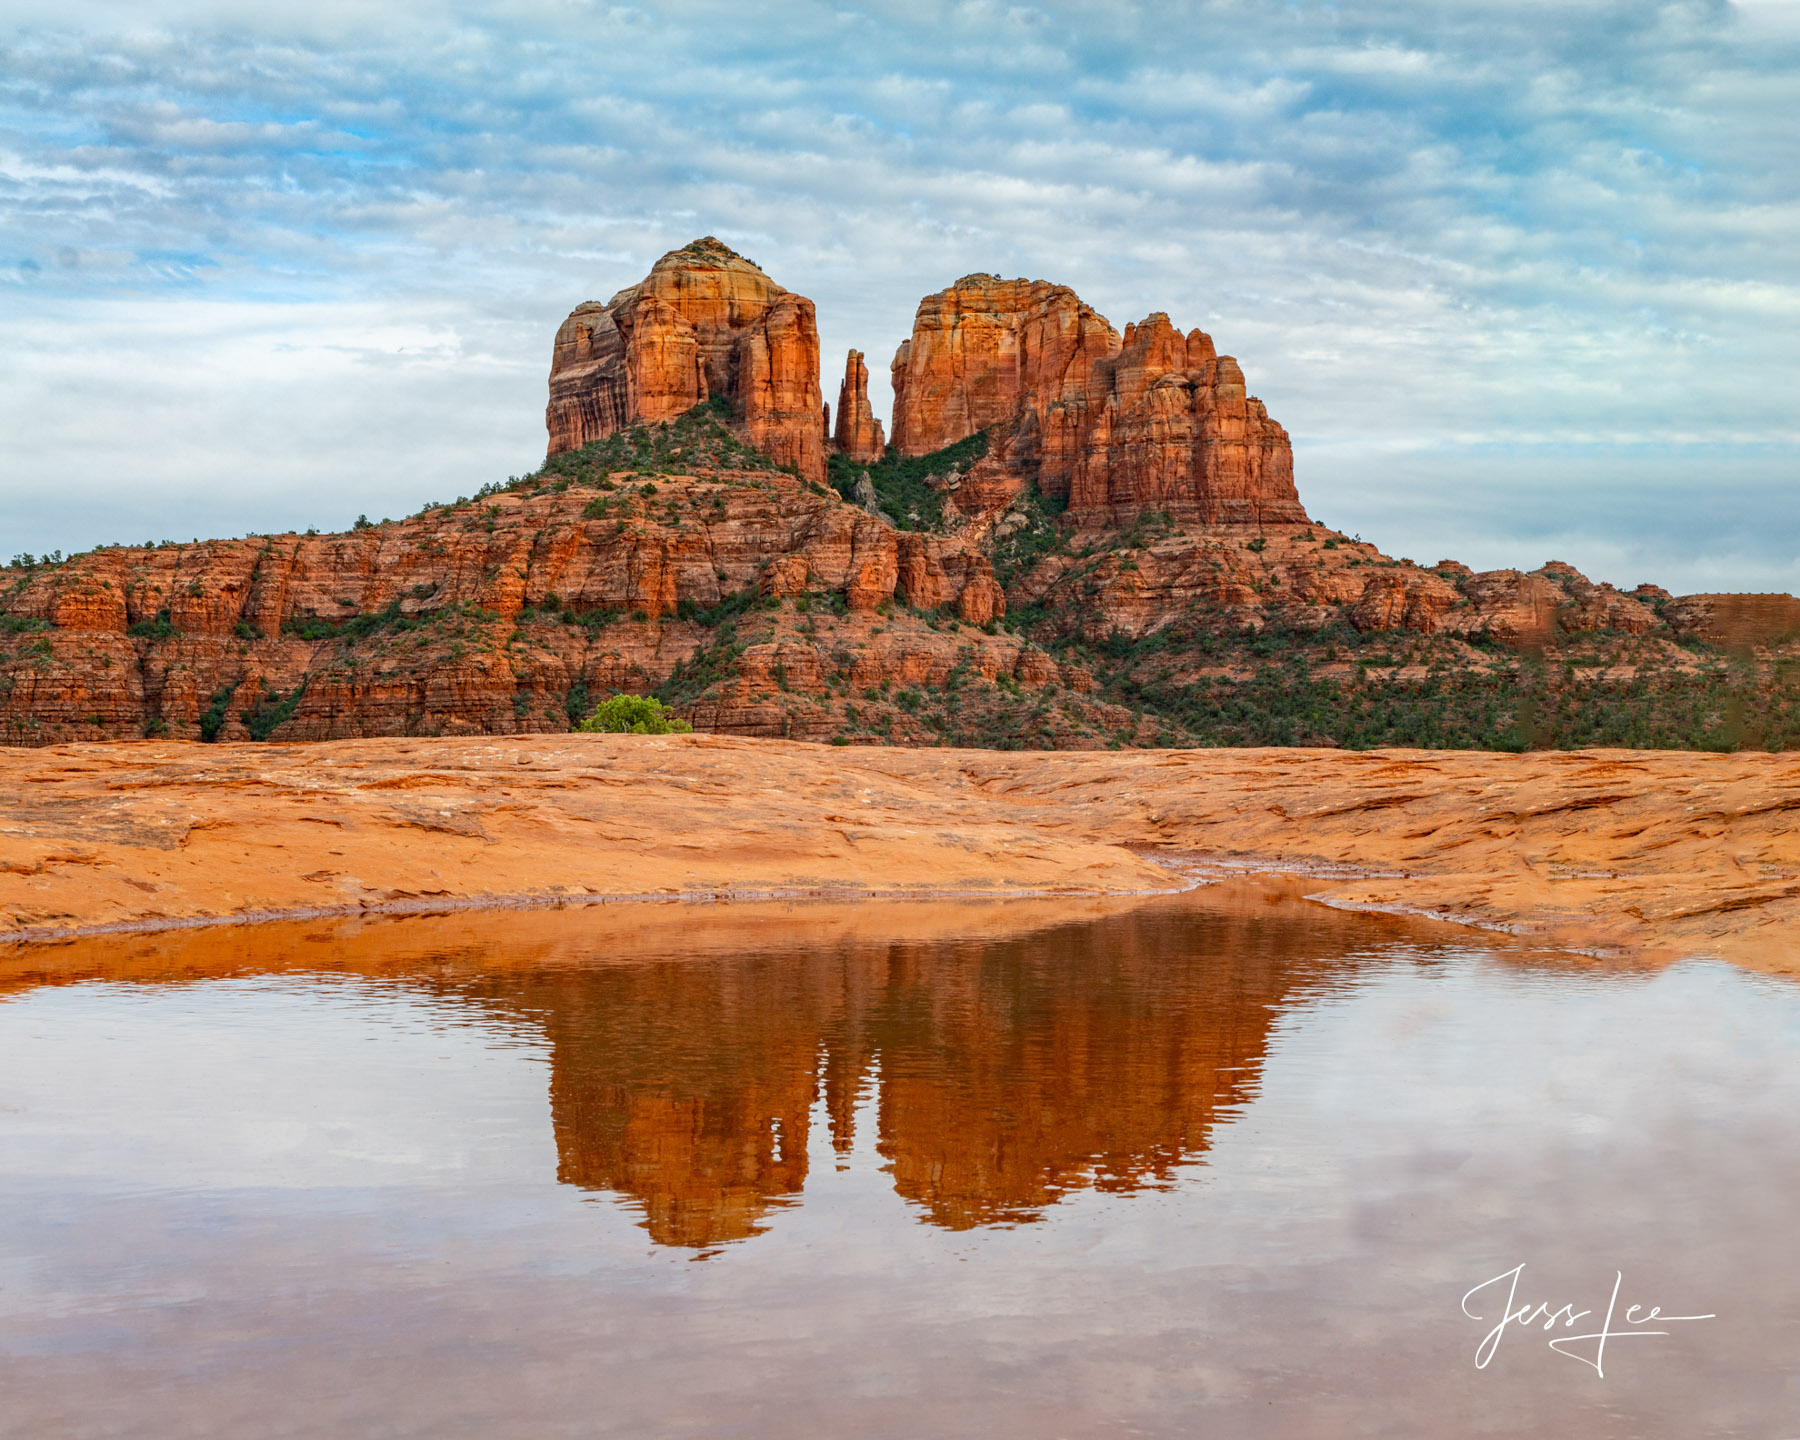 Reflection of Cathedral Rock, a sandstone butte on the Sedona skyline in Arizona.